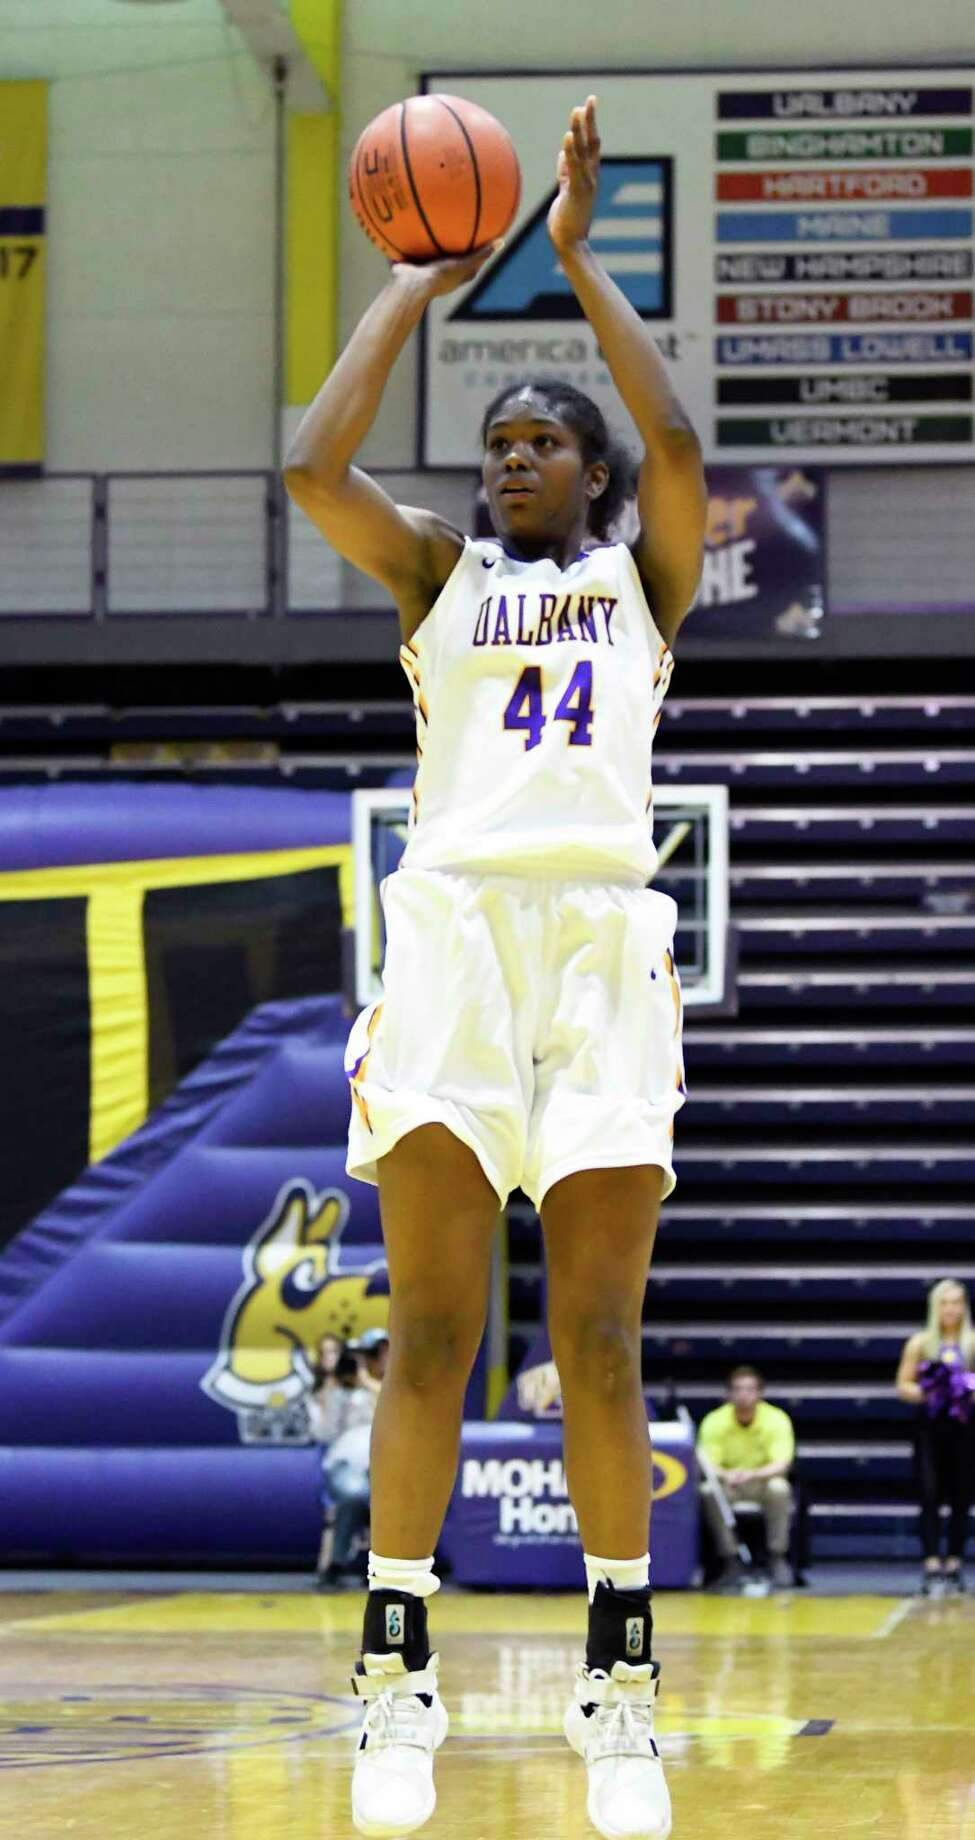 UAlbany's forward Chyanna Canada (44) puts up a shot againt St. John's during the second half of an NCAA college basketball game on Thursday, Nov. 30, 2017, in Albany, N.Y. St. John won the game71-66. (Hans Pennink / Special to the Times Union) ORG XMIT: HP106